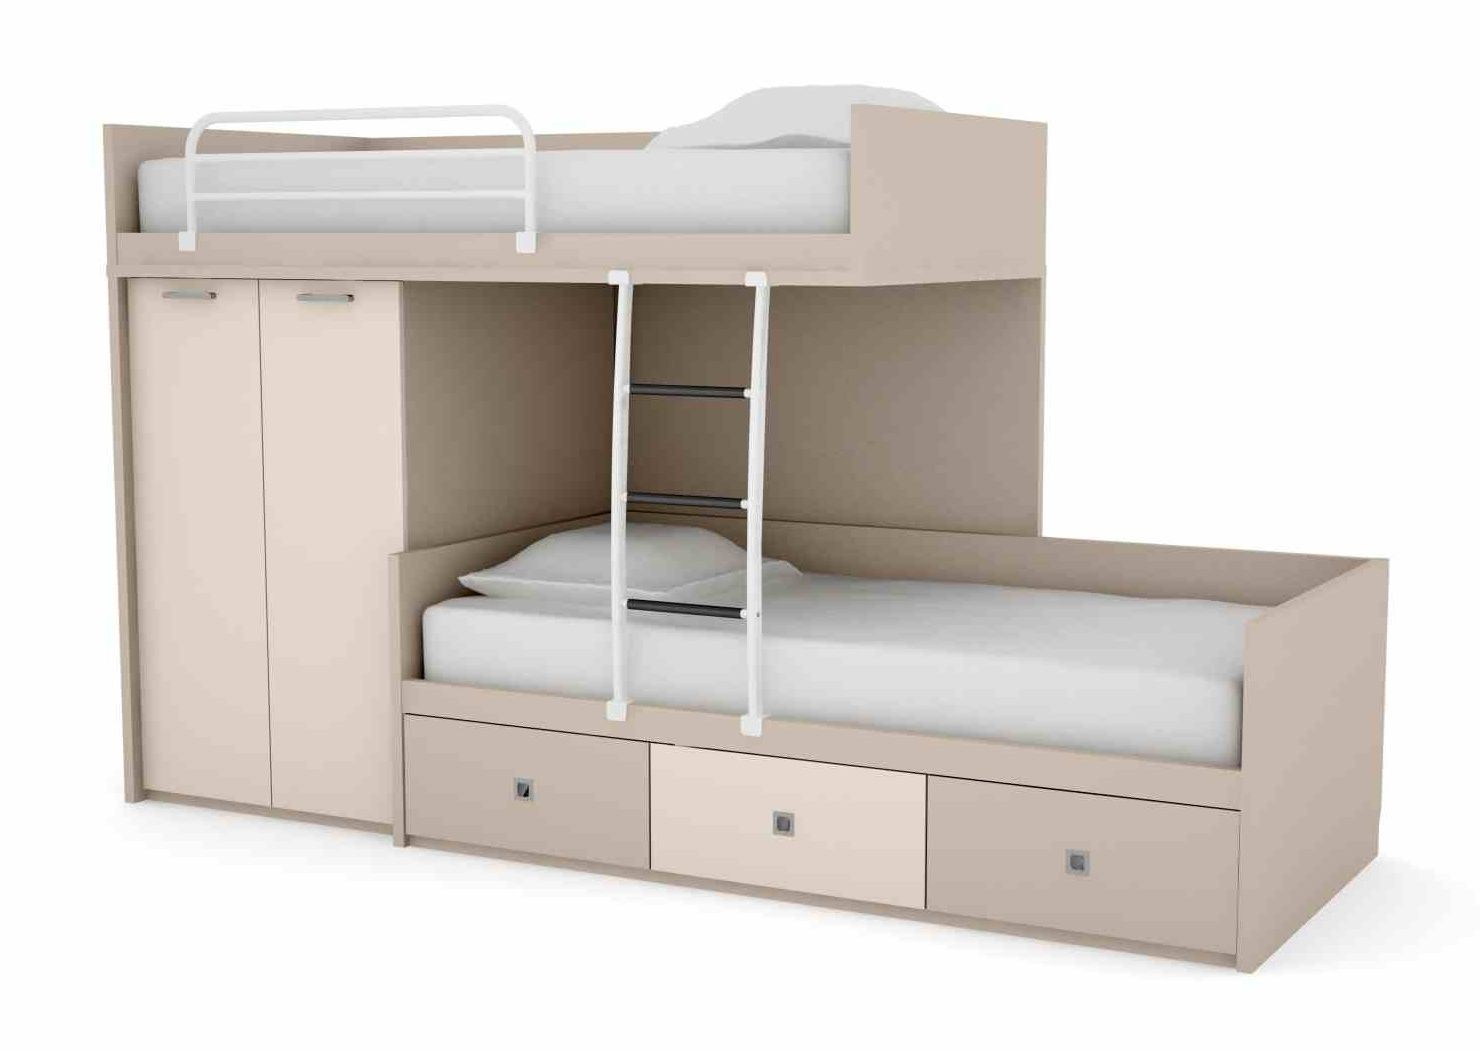 bunk beds modern bunk beds bunk beds for kids 3 4 beds bunk beds with